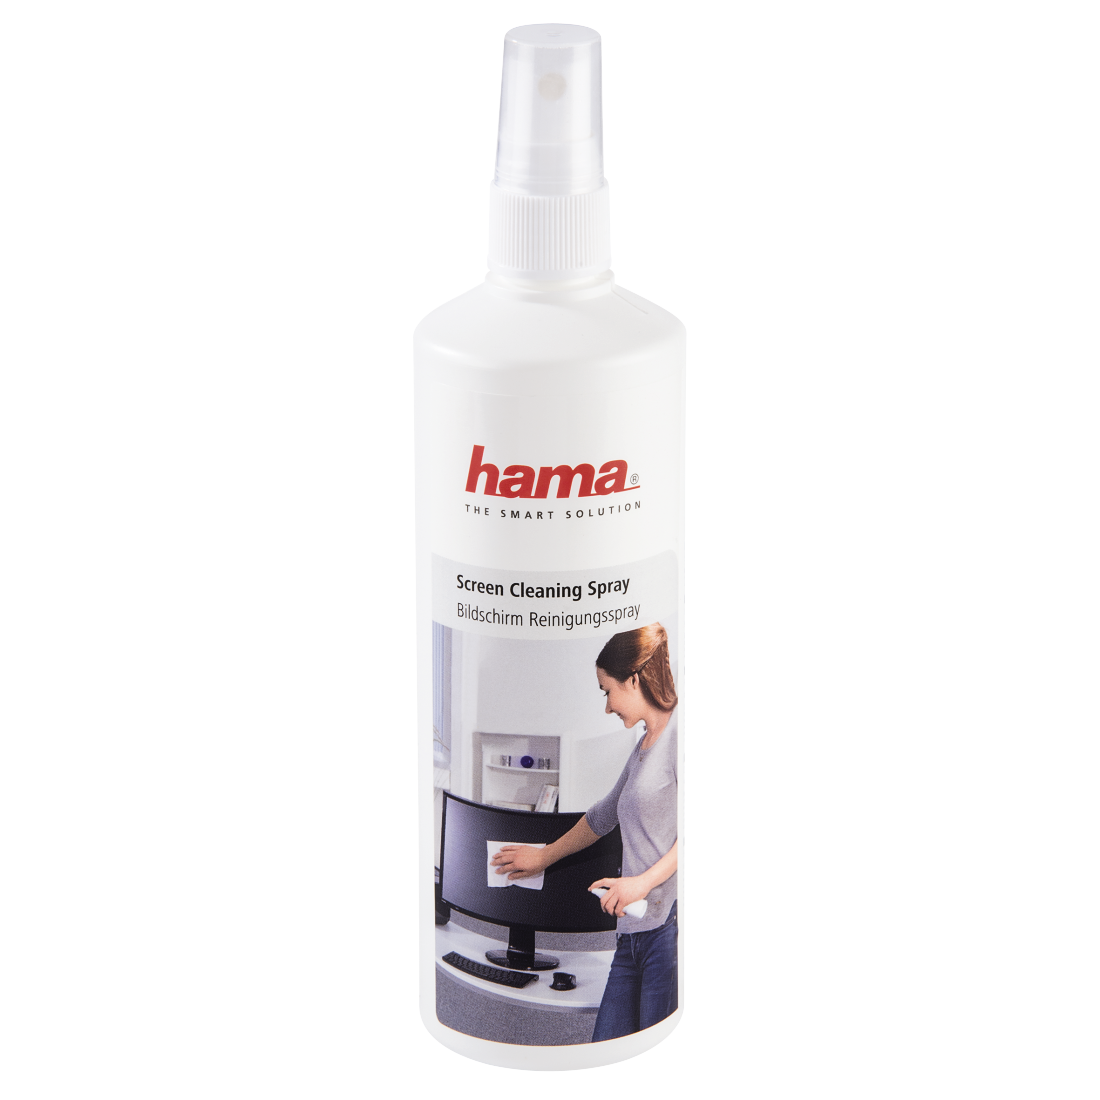 abx High-Res Image - Hama, Screen Cleaning Spray, 250 ml